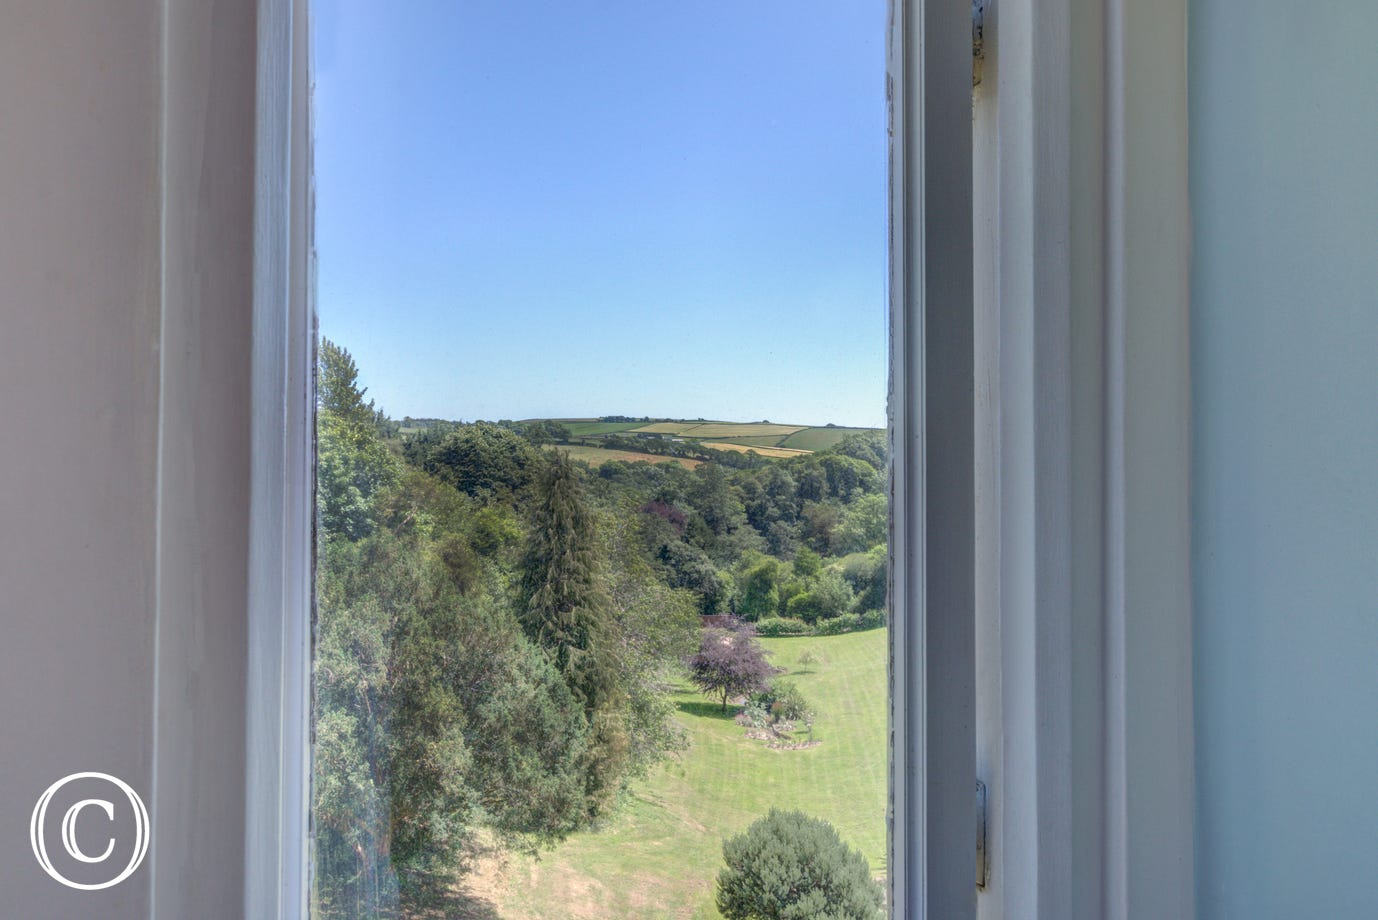 View from the property's window overlooking the South Devon countryside